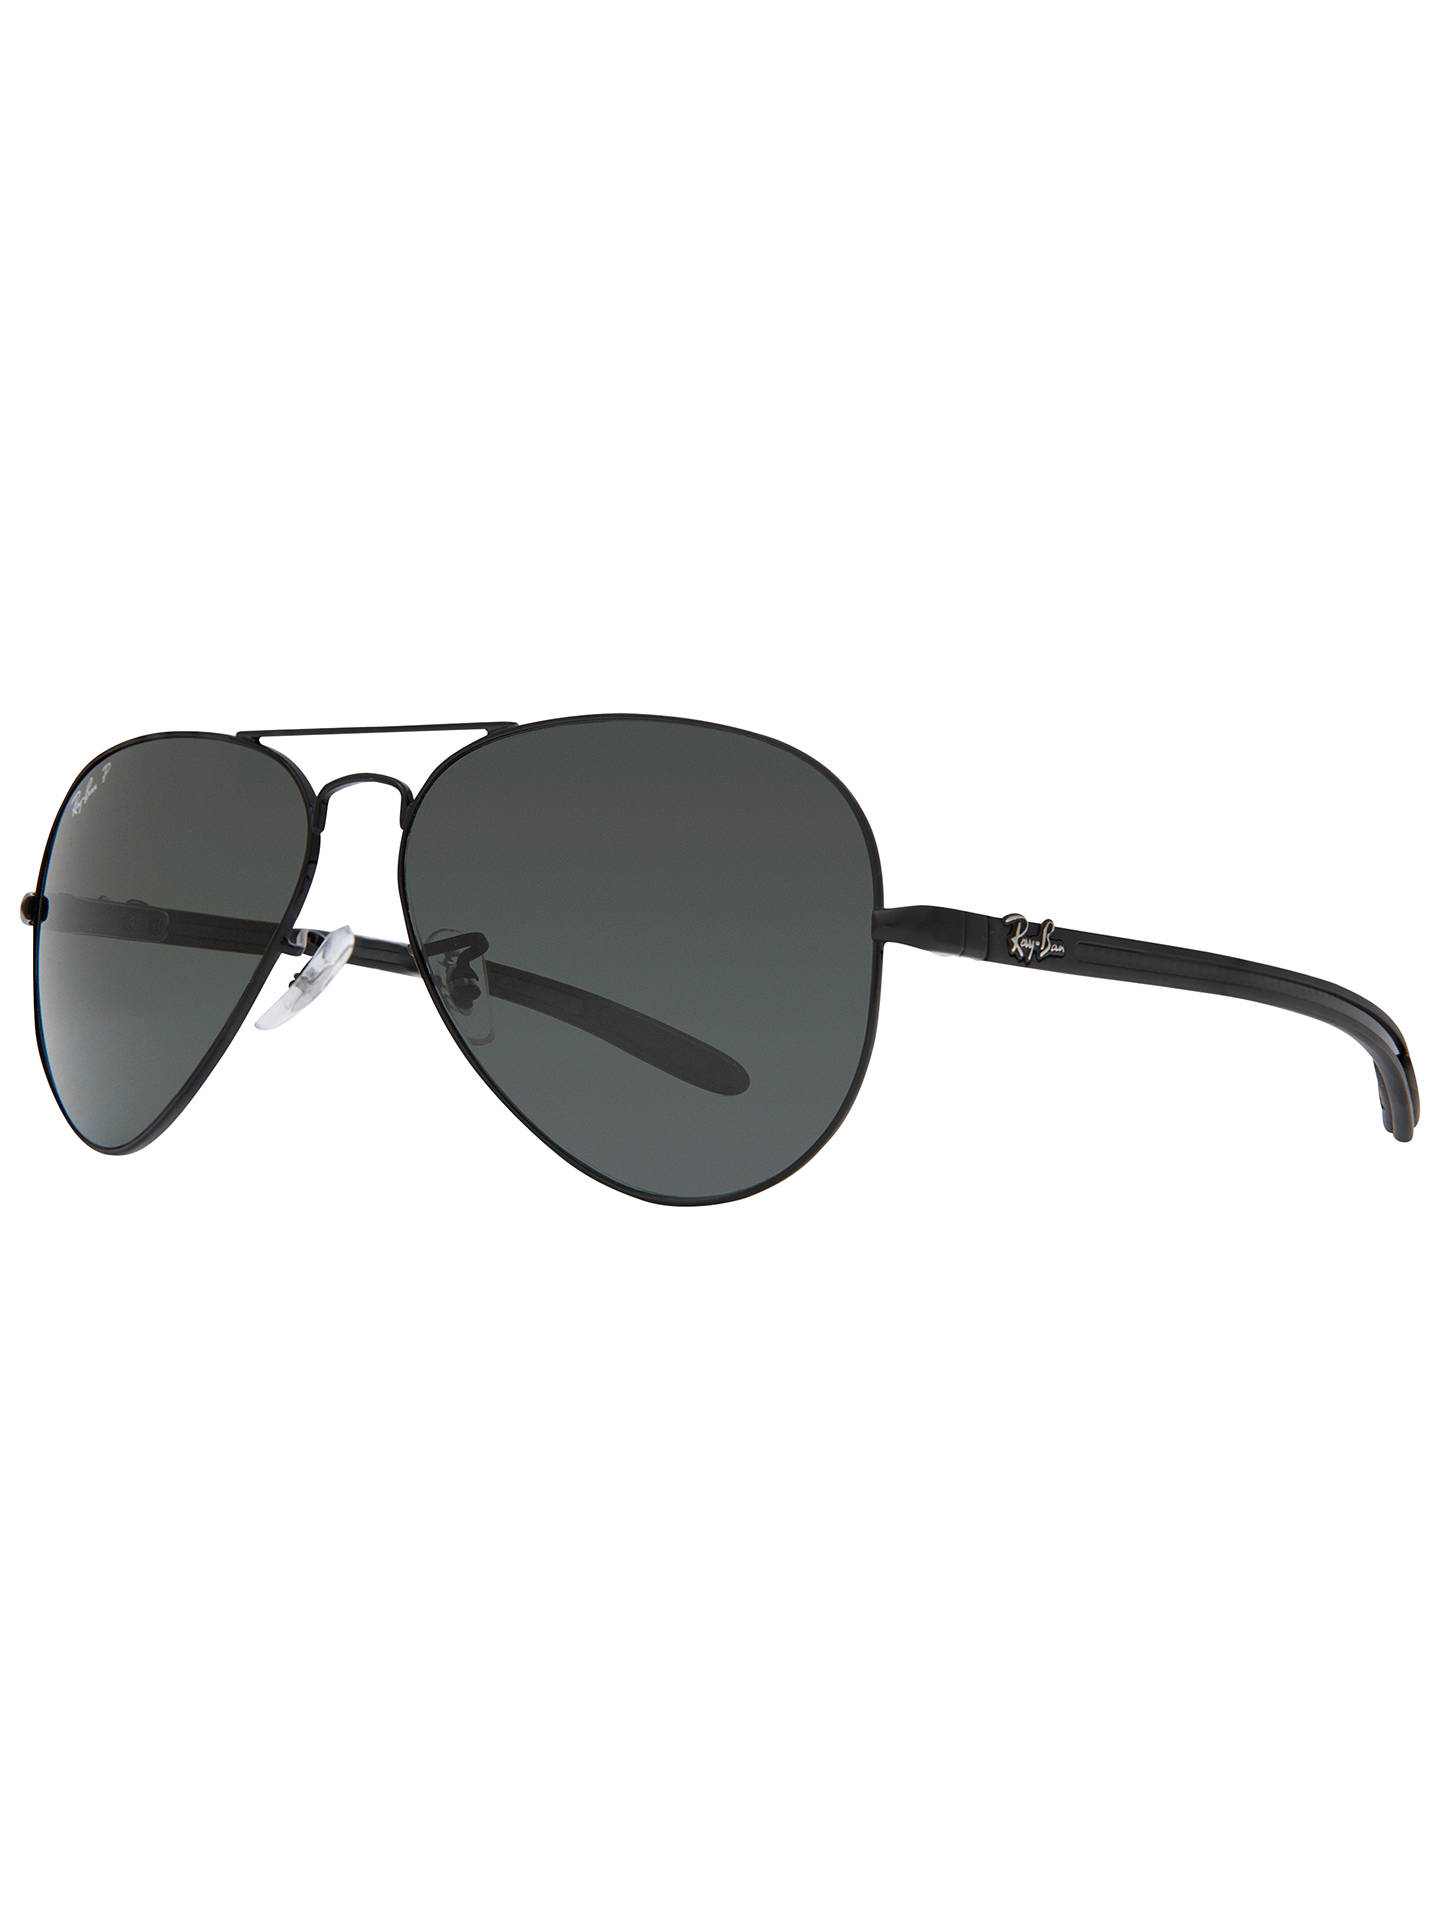 fed3281cfef Buy Ray-Ban RB8307 Aviator Polarised Sunglasses